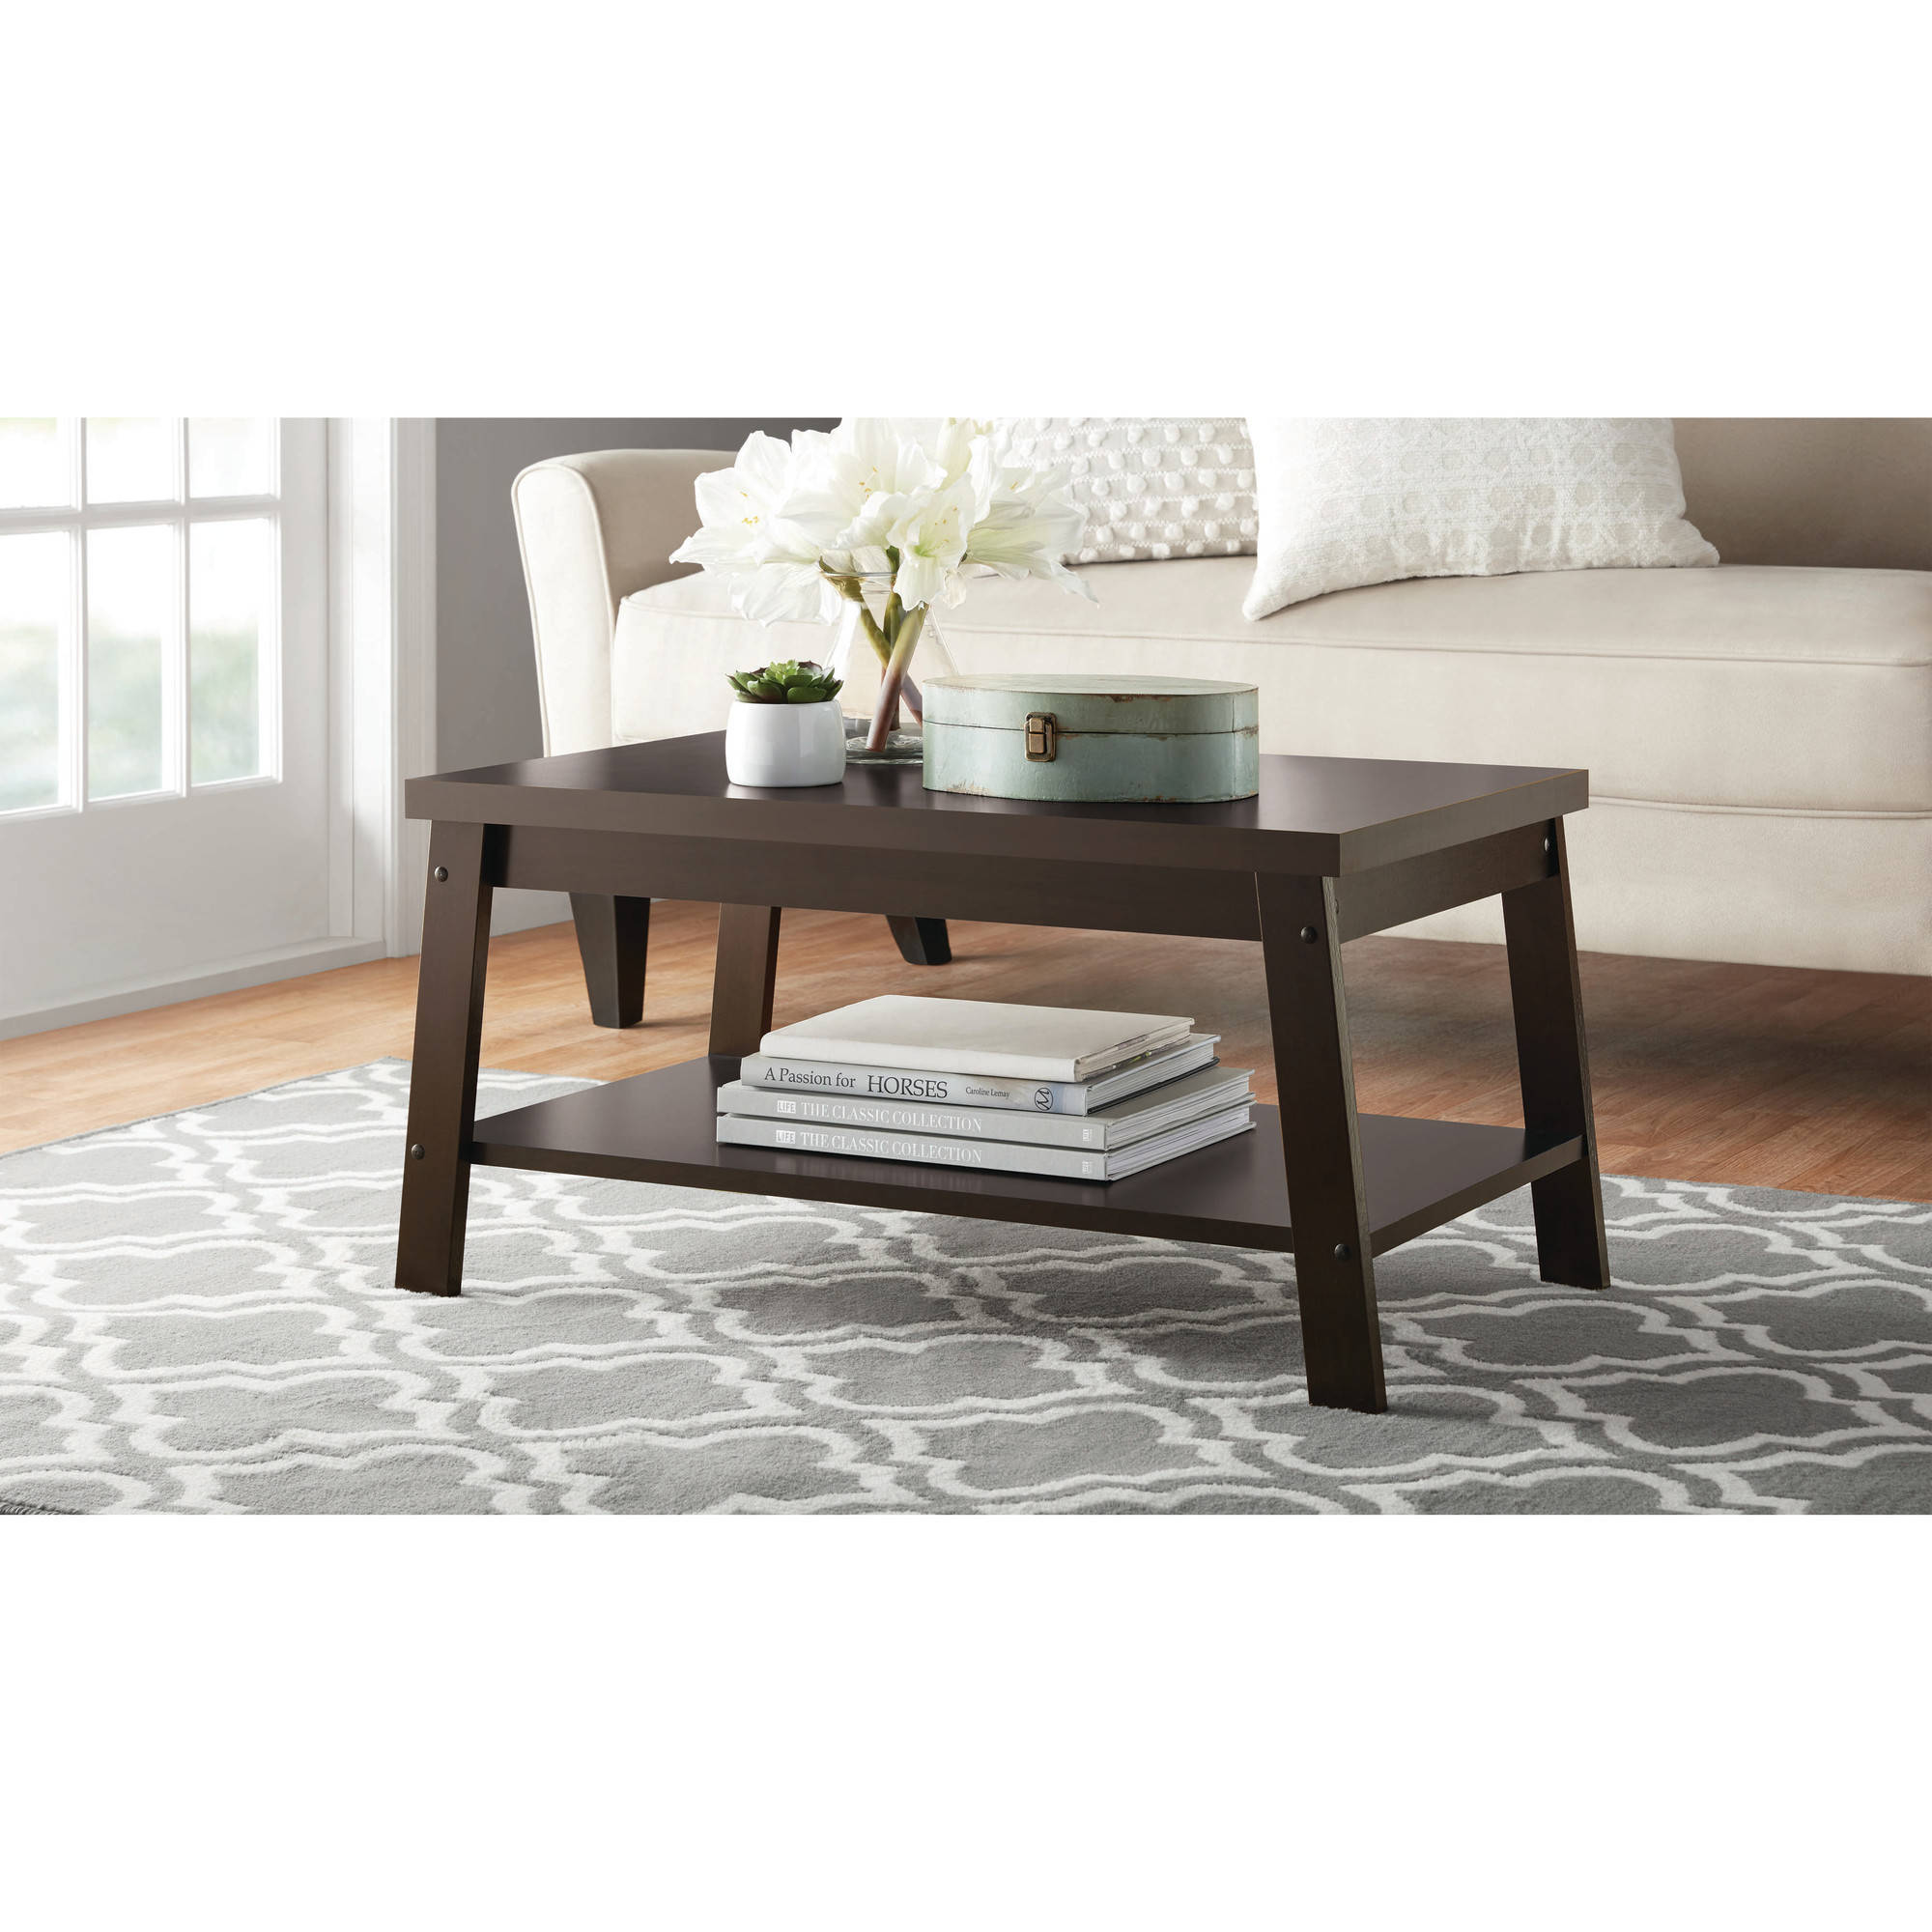 mainstays logan coffee table, multiple finishes - walmart